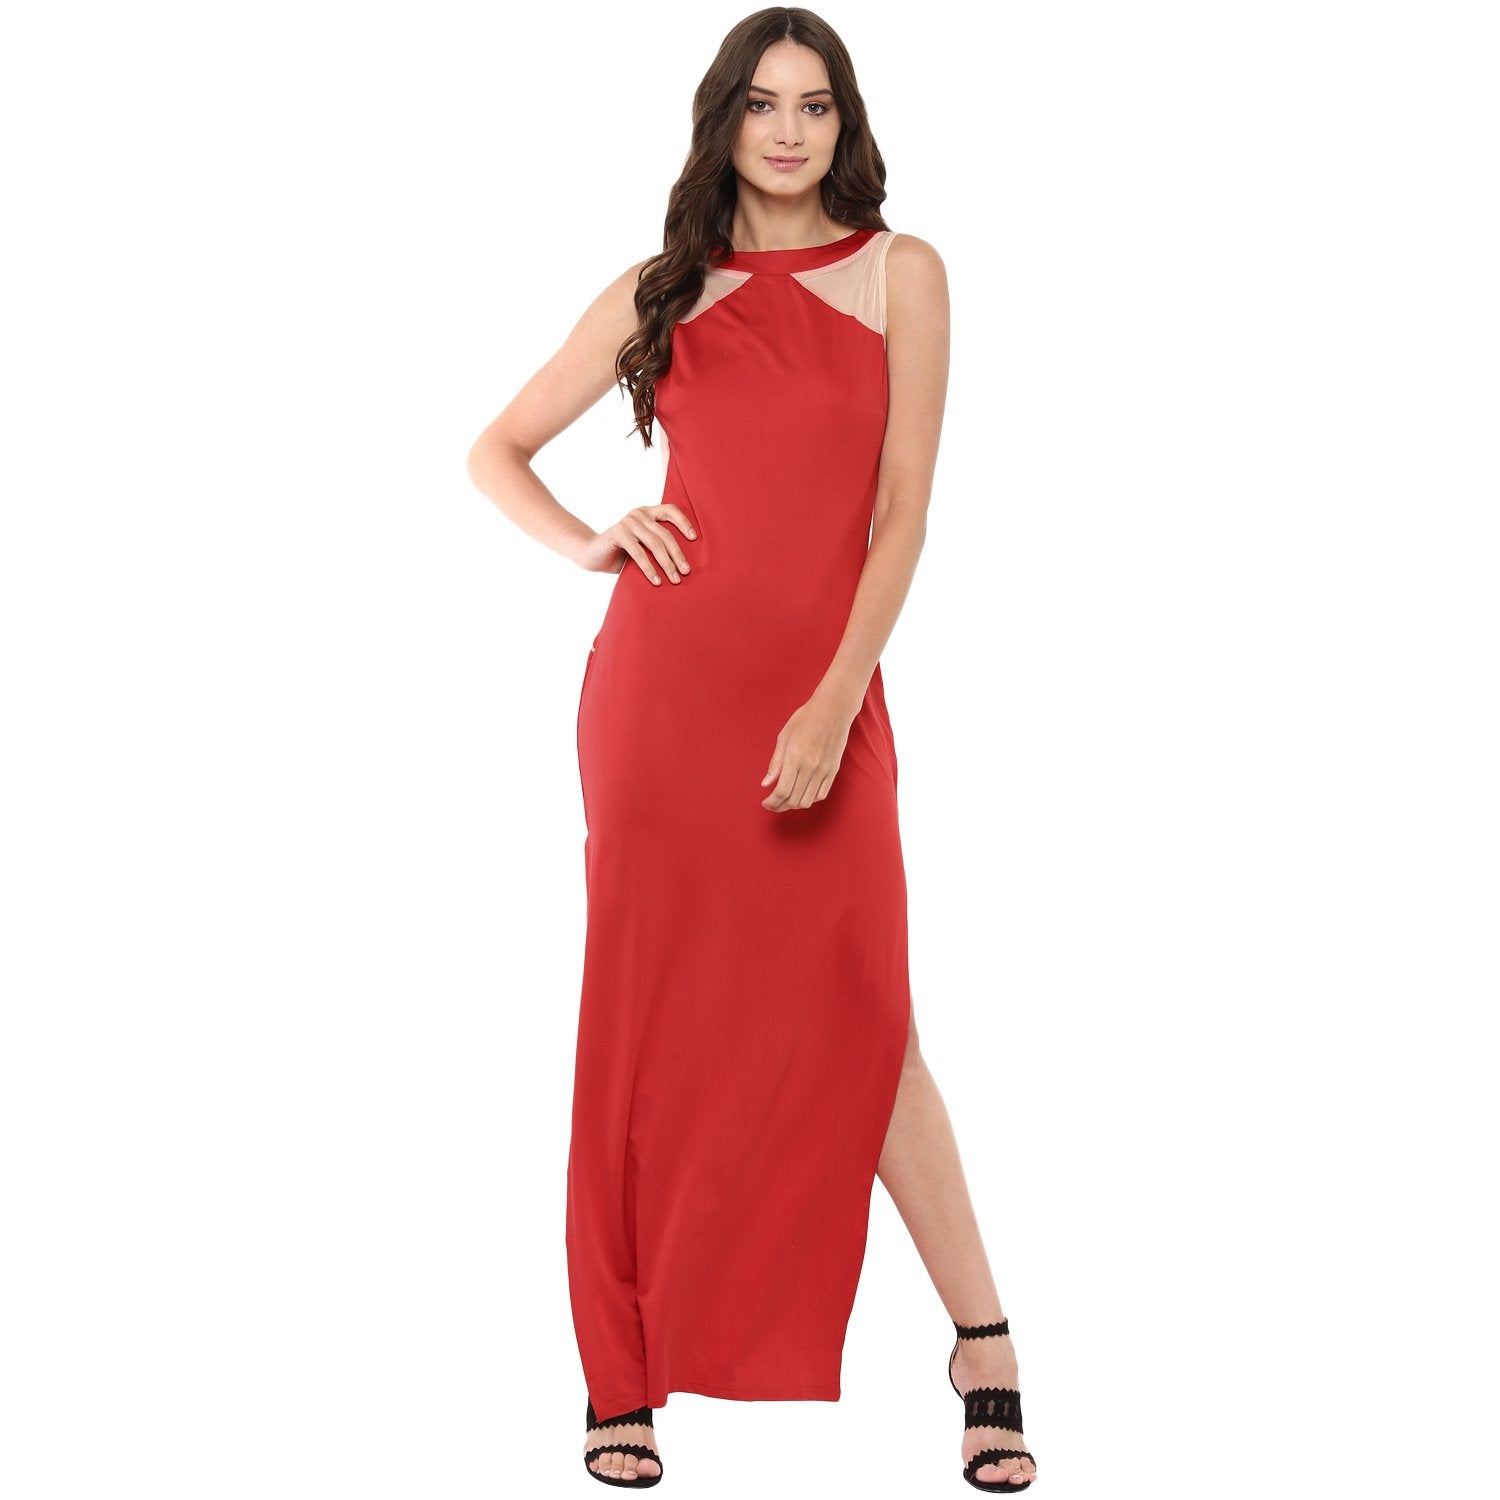 JAUNE DARE BACK JENNIFER LOPEZ GOWN - Red